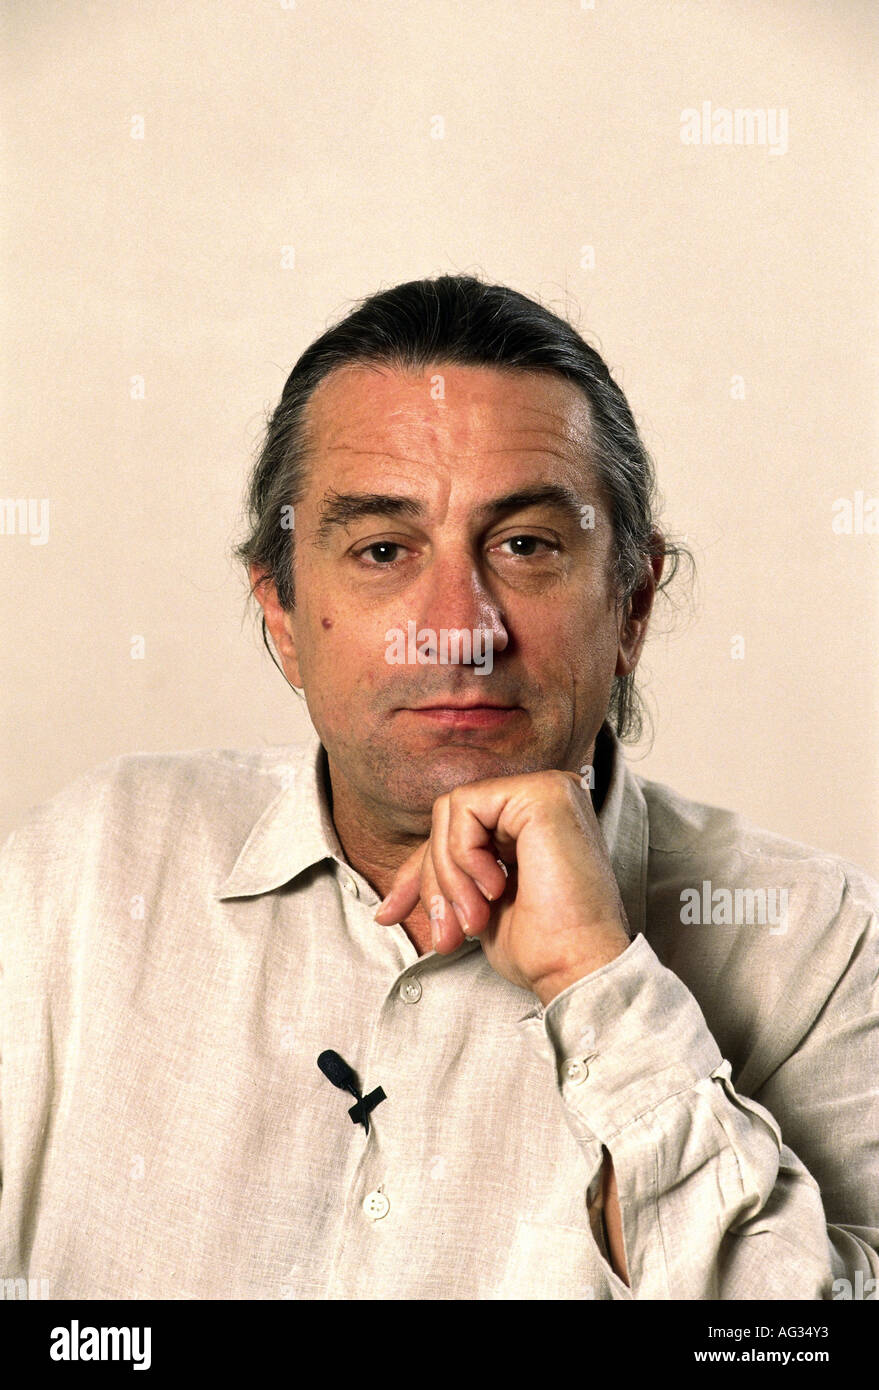 Niro, Robert de, * 17.8.1943, American actor, portrait, 1990s, 90s, , Additional-Rights-Clearances-NA - Stock Image